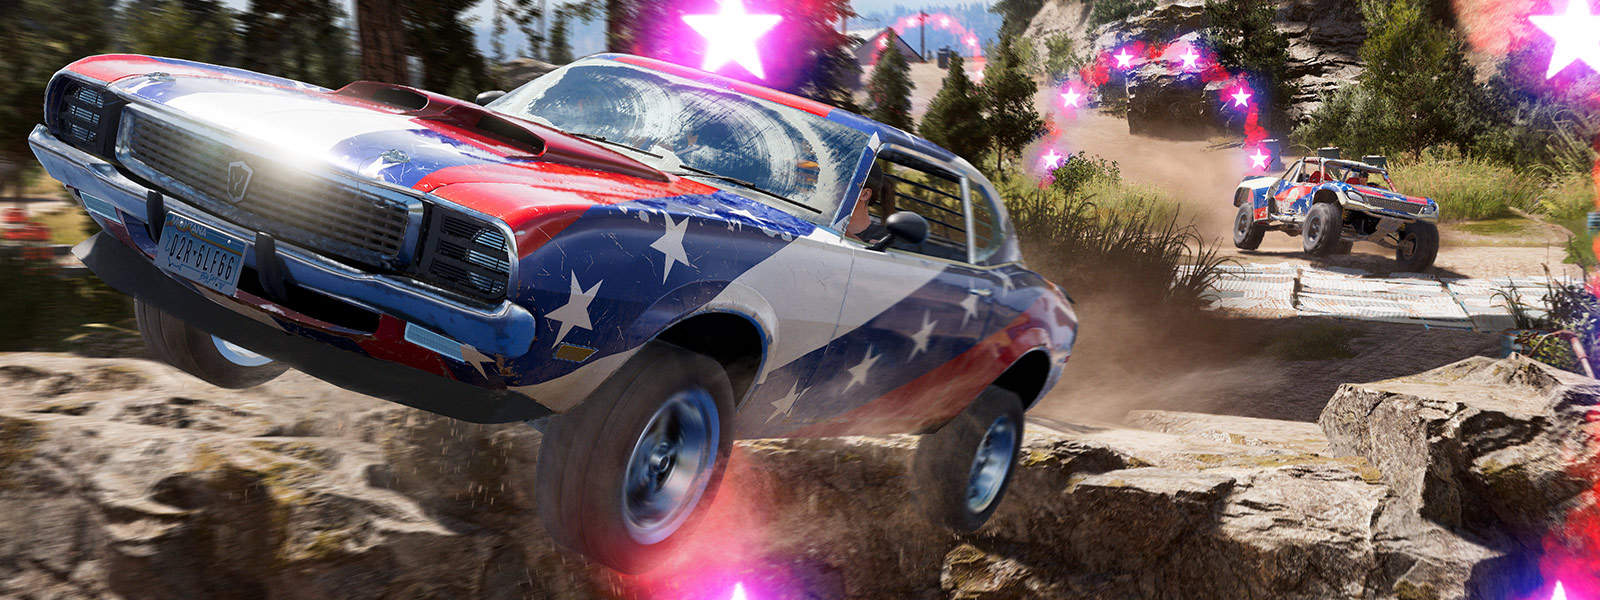 A classic muscle car with stars and stripes paintjob rides off a cliff